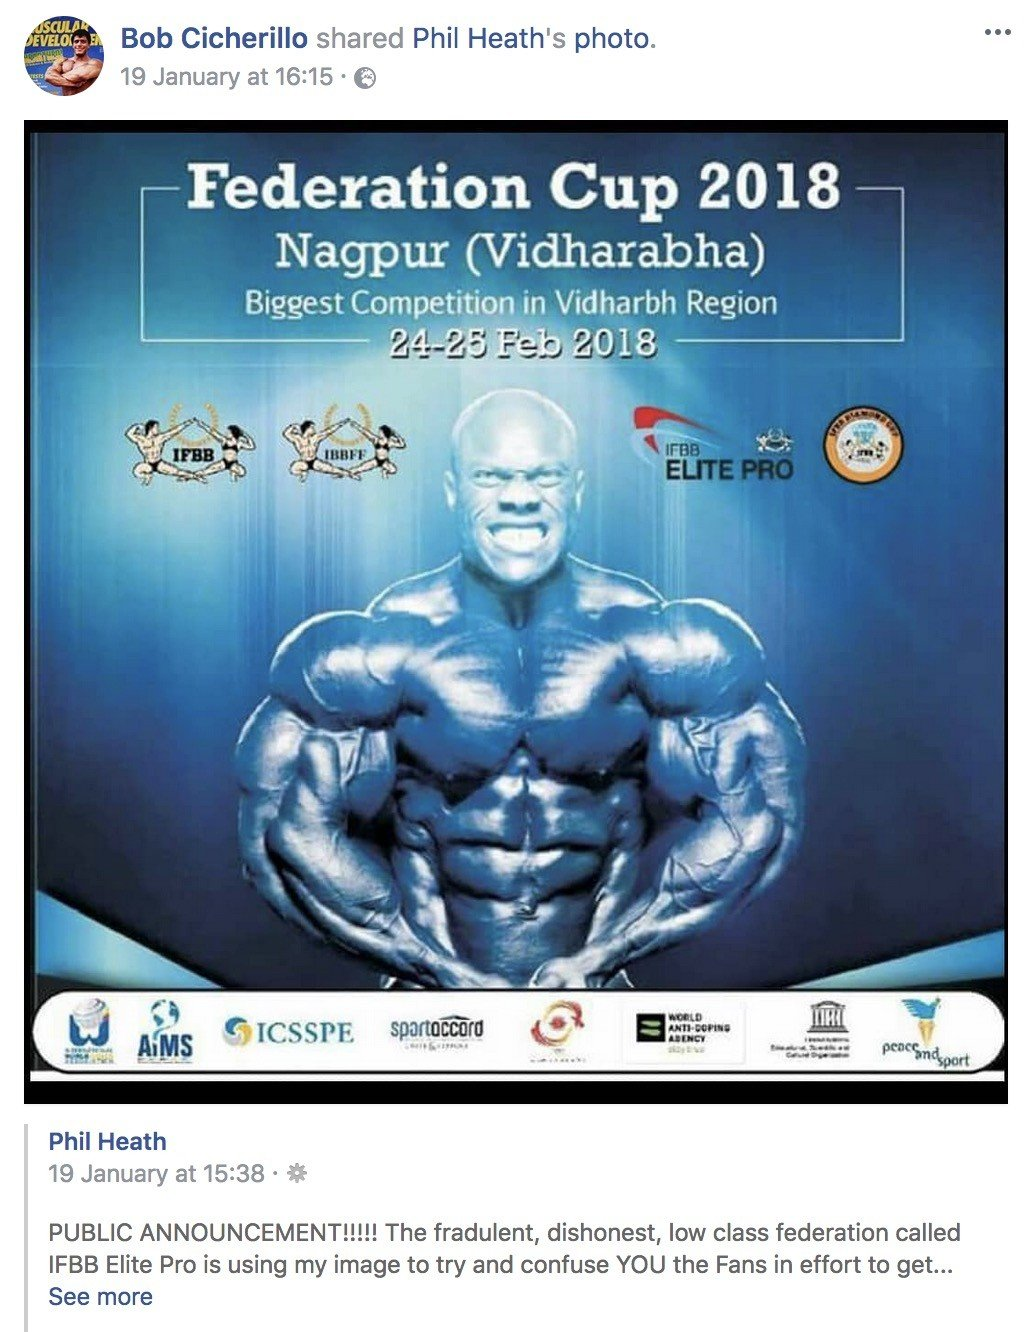 IFBB/IFBB Elite Pro NOT affiliated with controversial ...